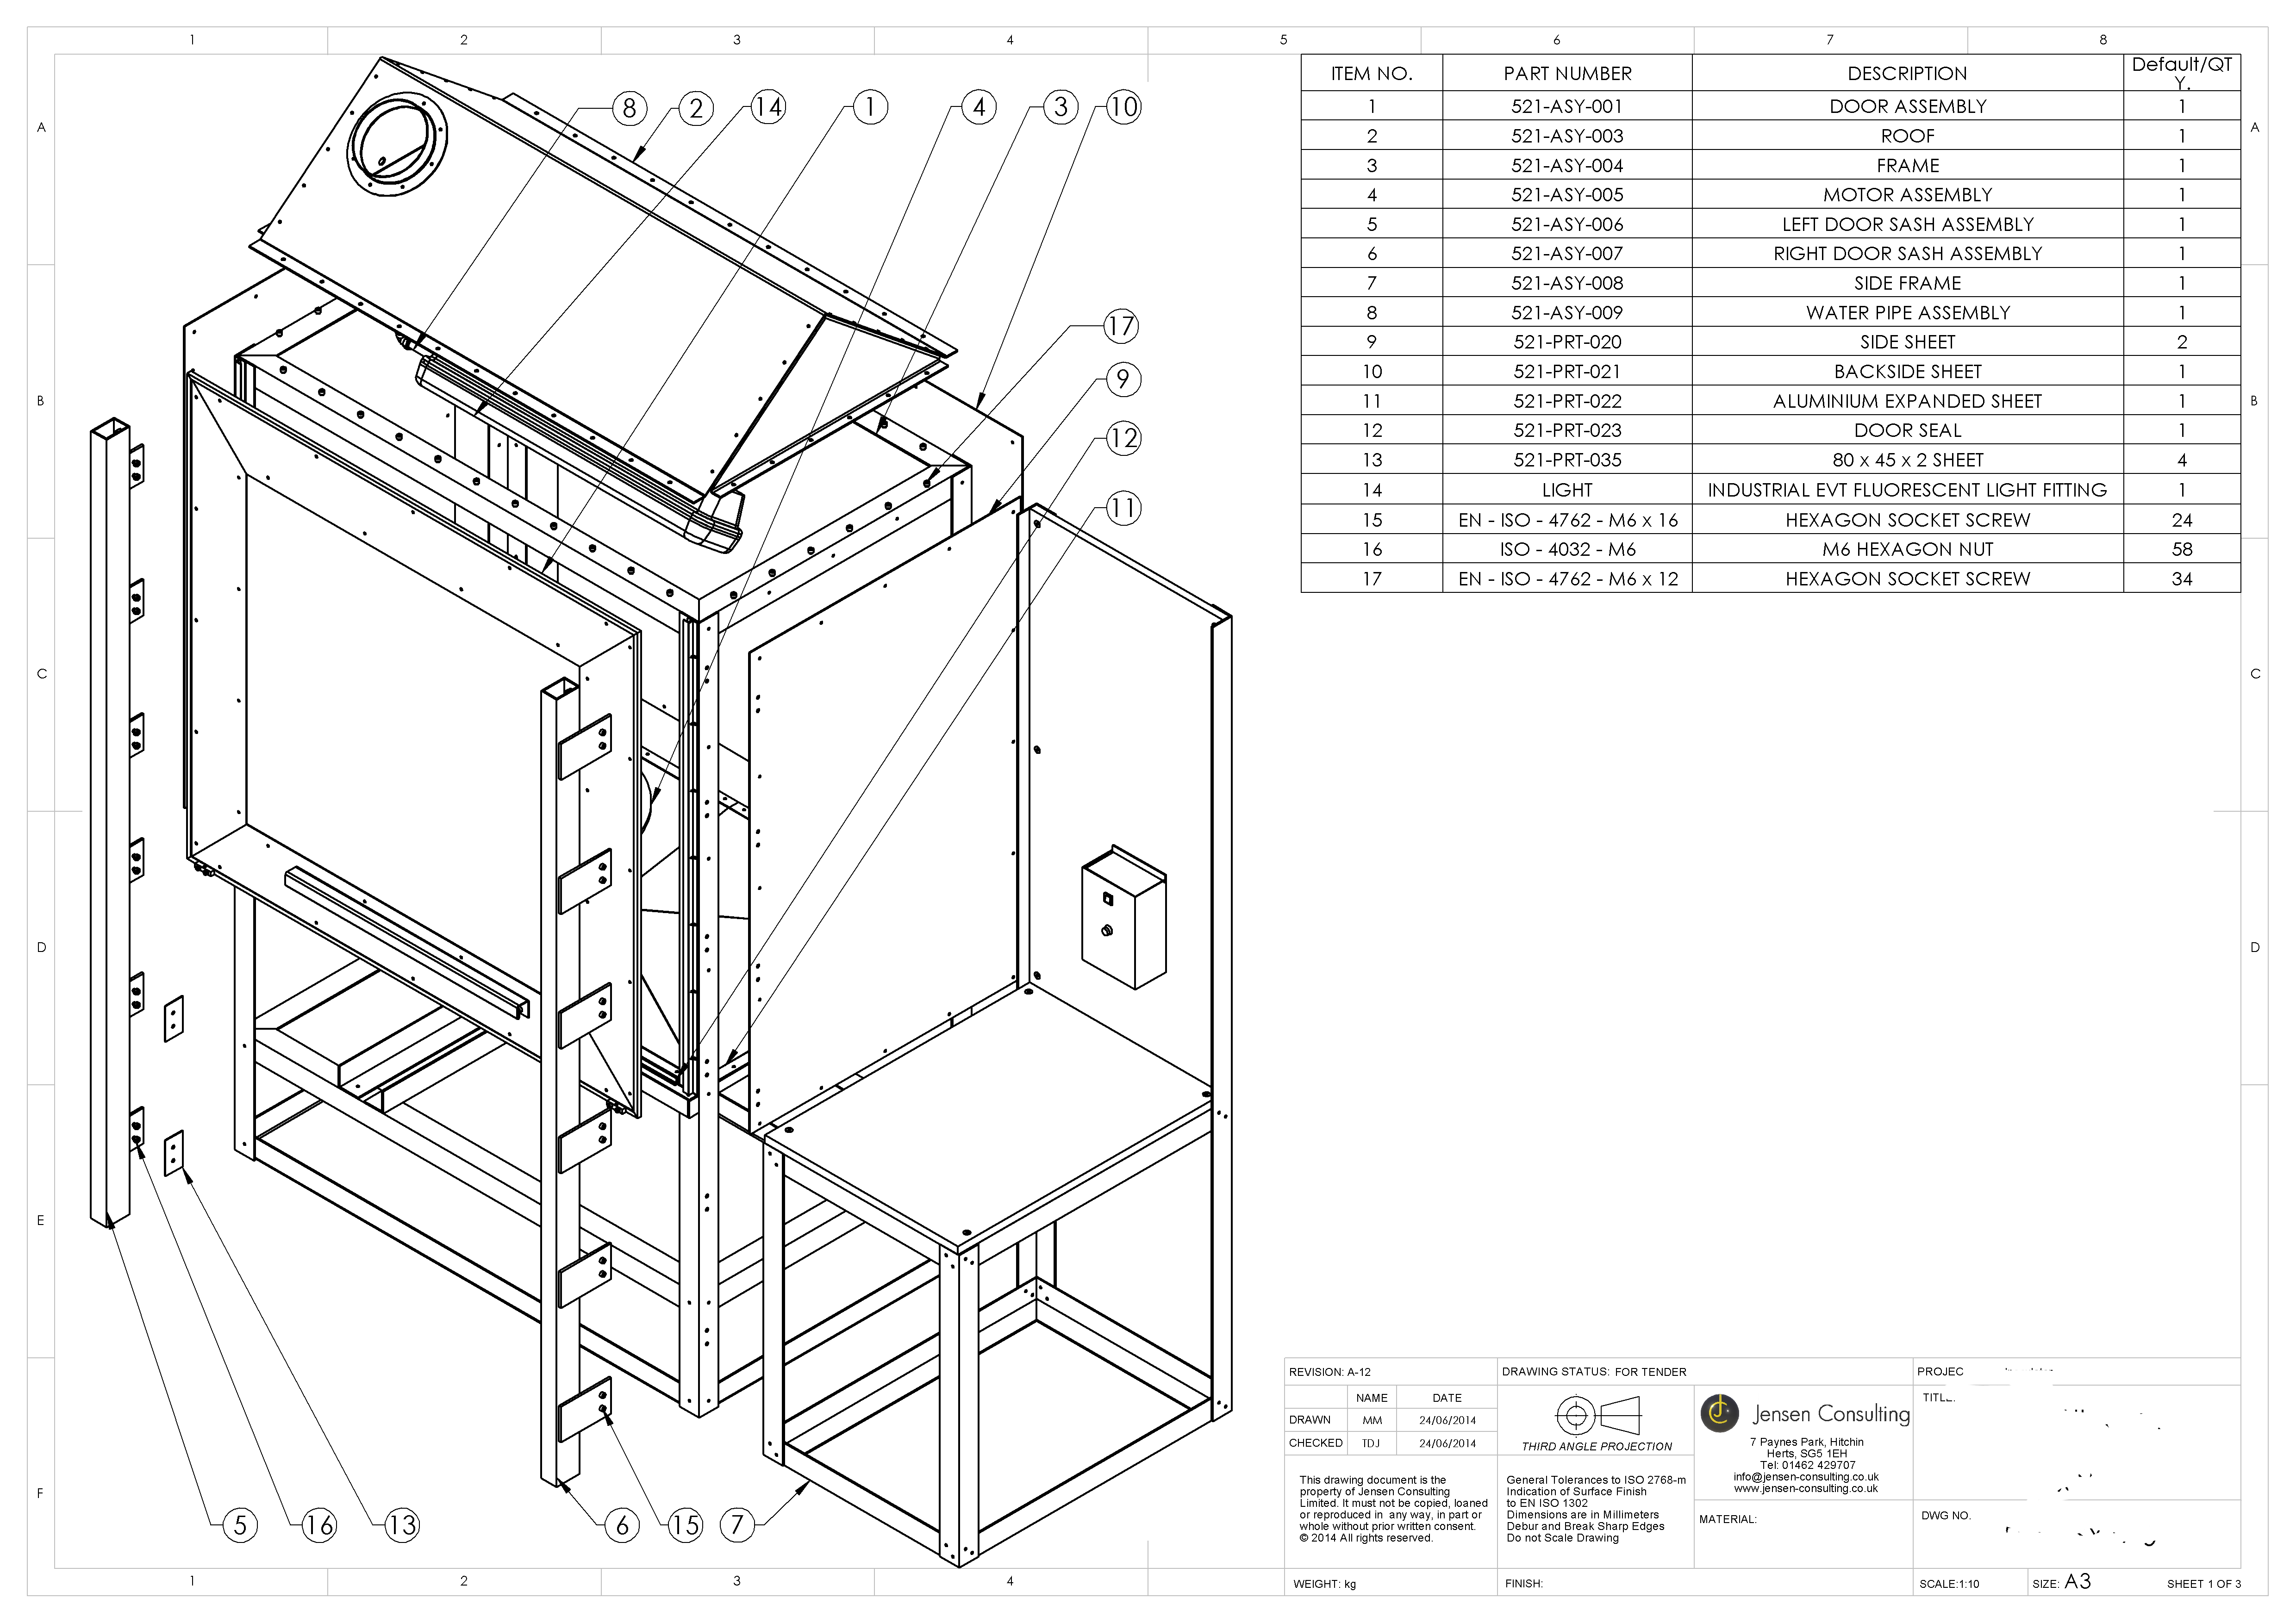 Manufacturing Drawings from existing product